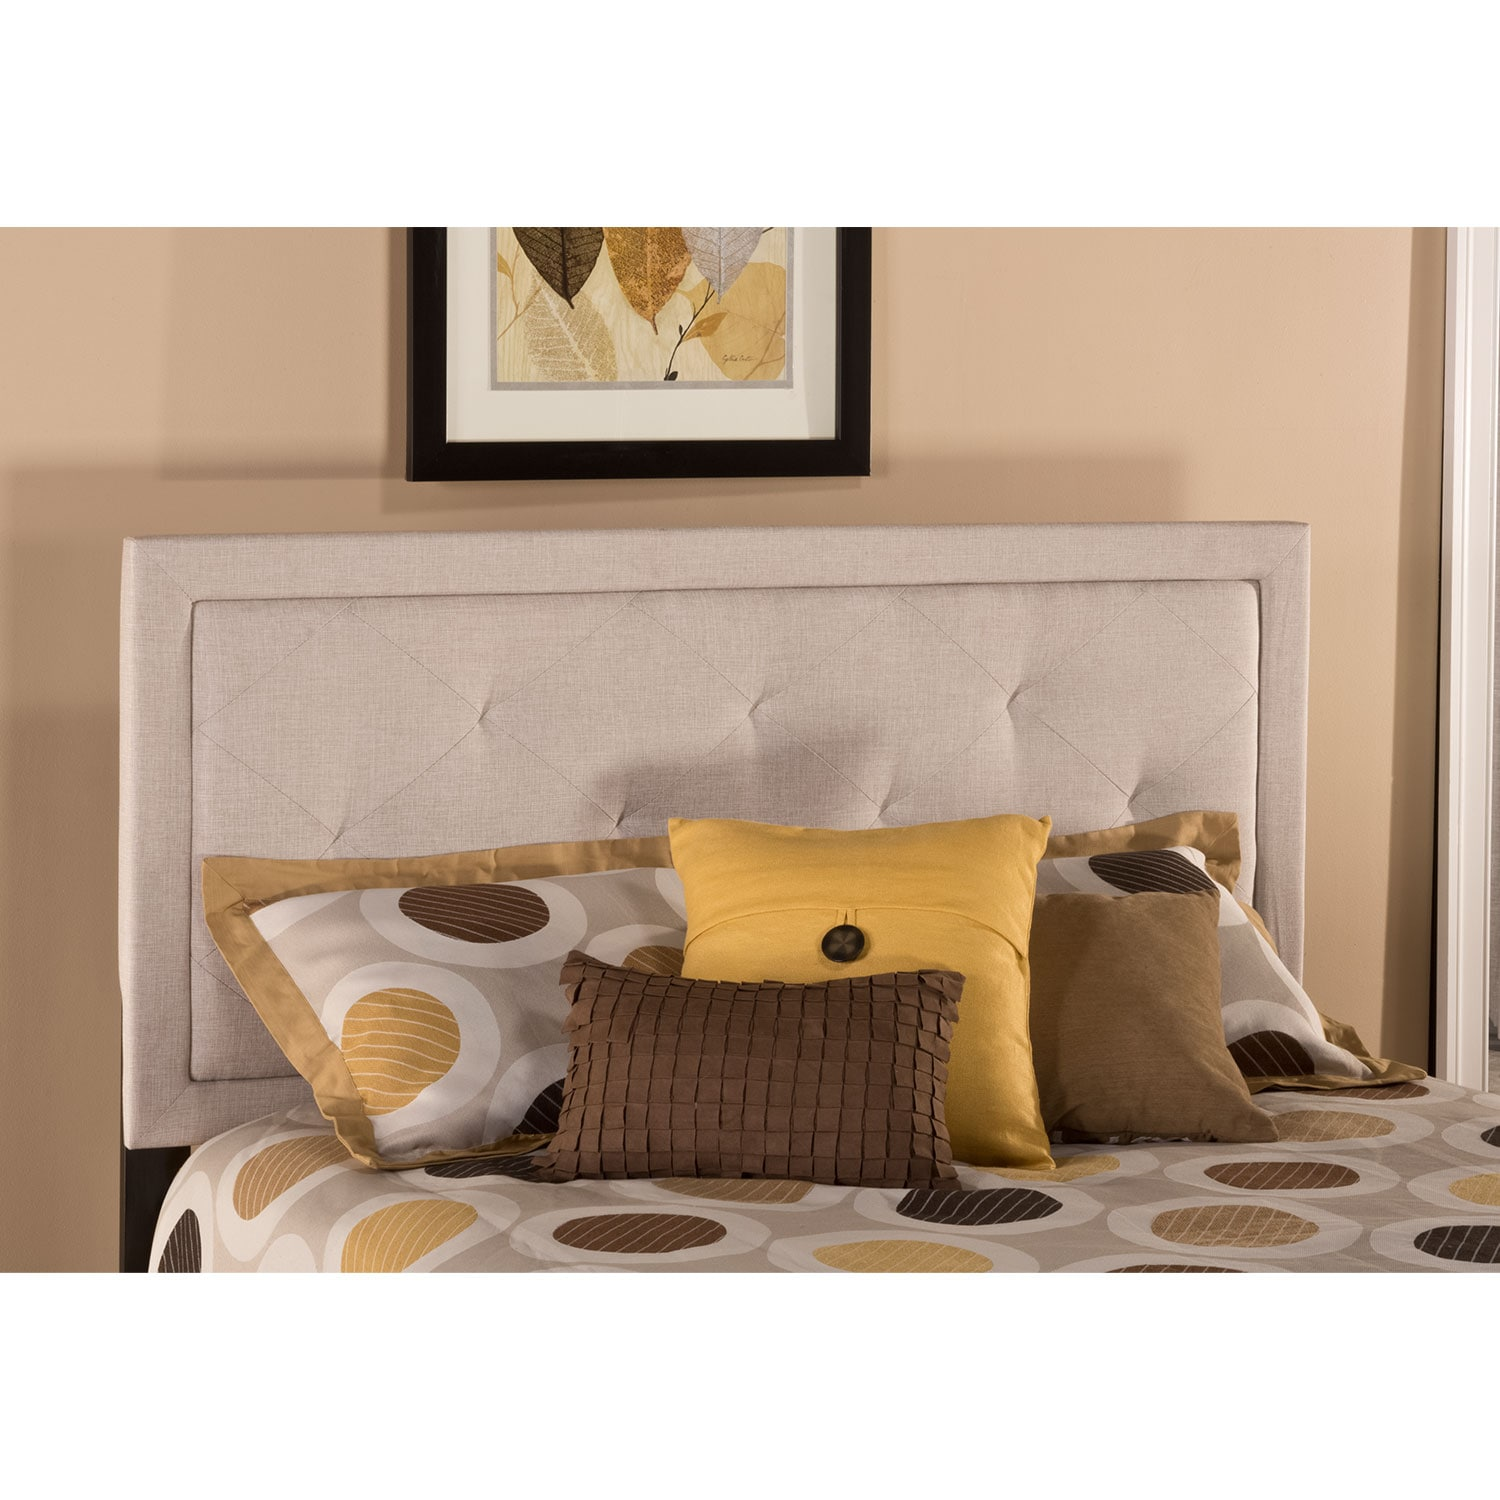 Becker Queen Headboard - Cream